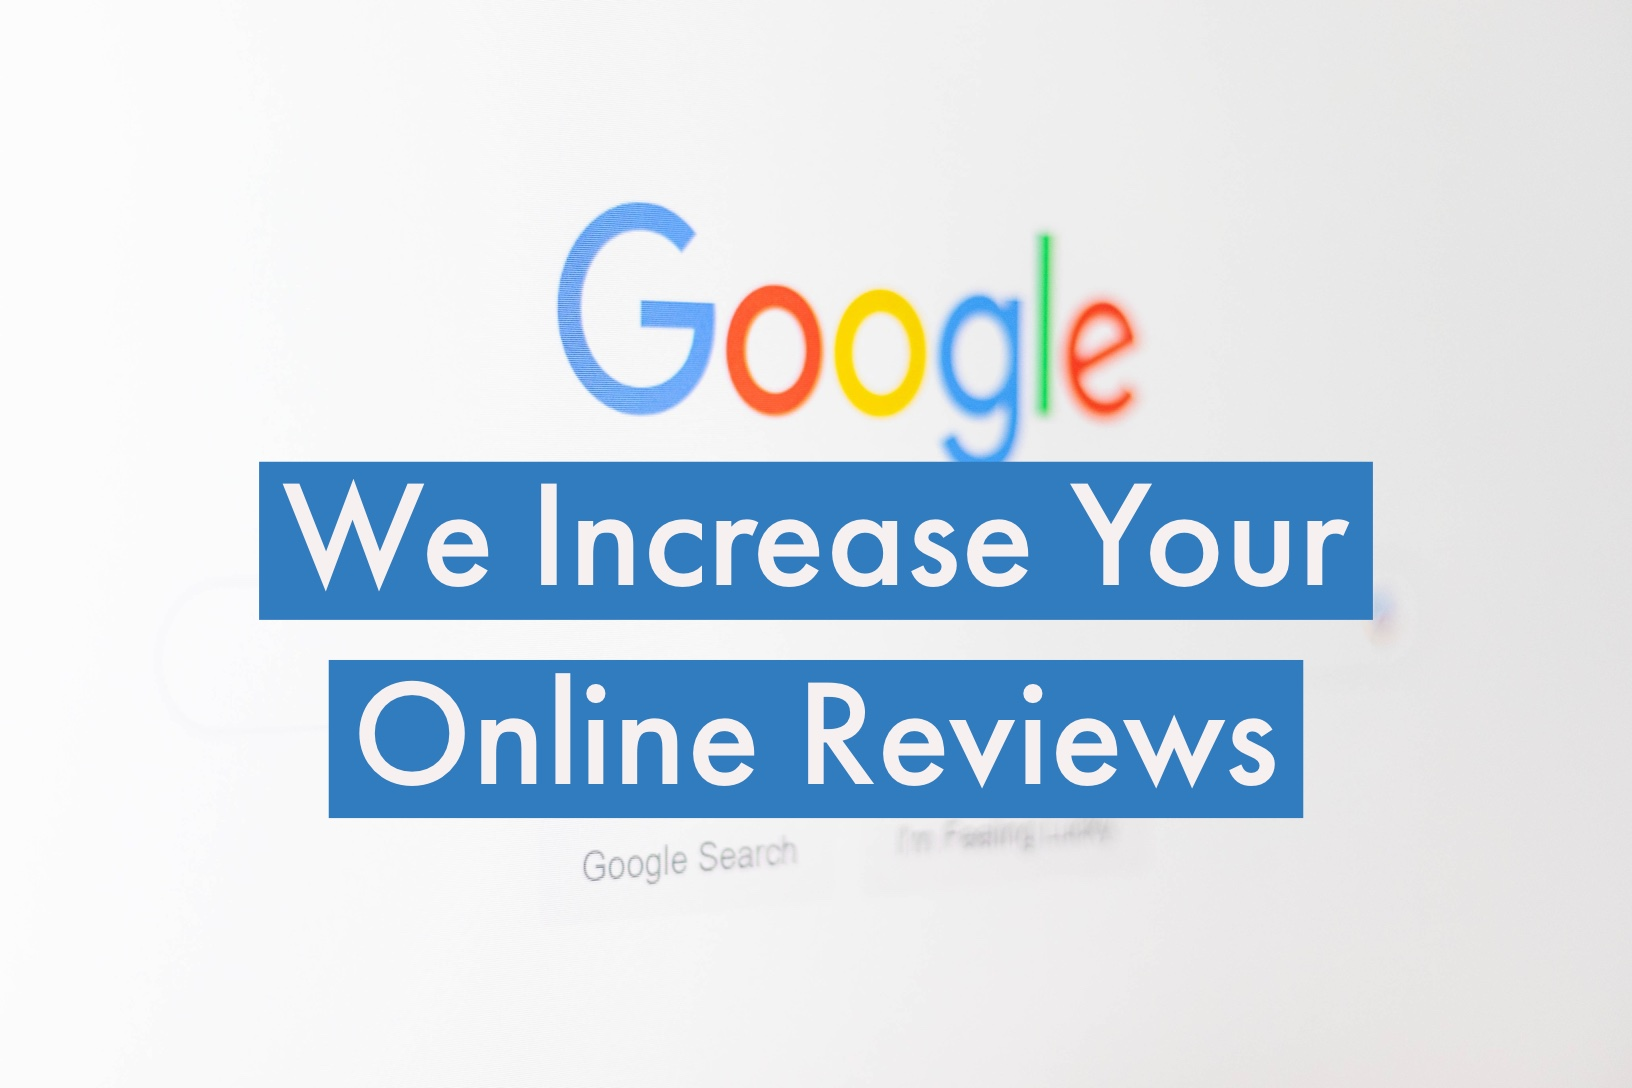 Reviews matter. We start by increasing your reviews, responding to reviews, and making you appear professional.